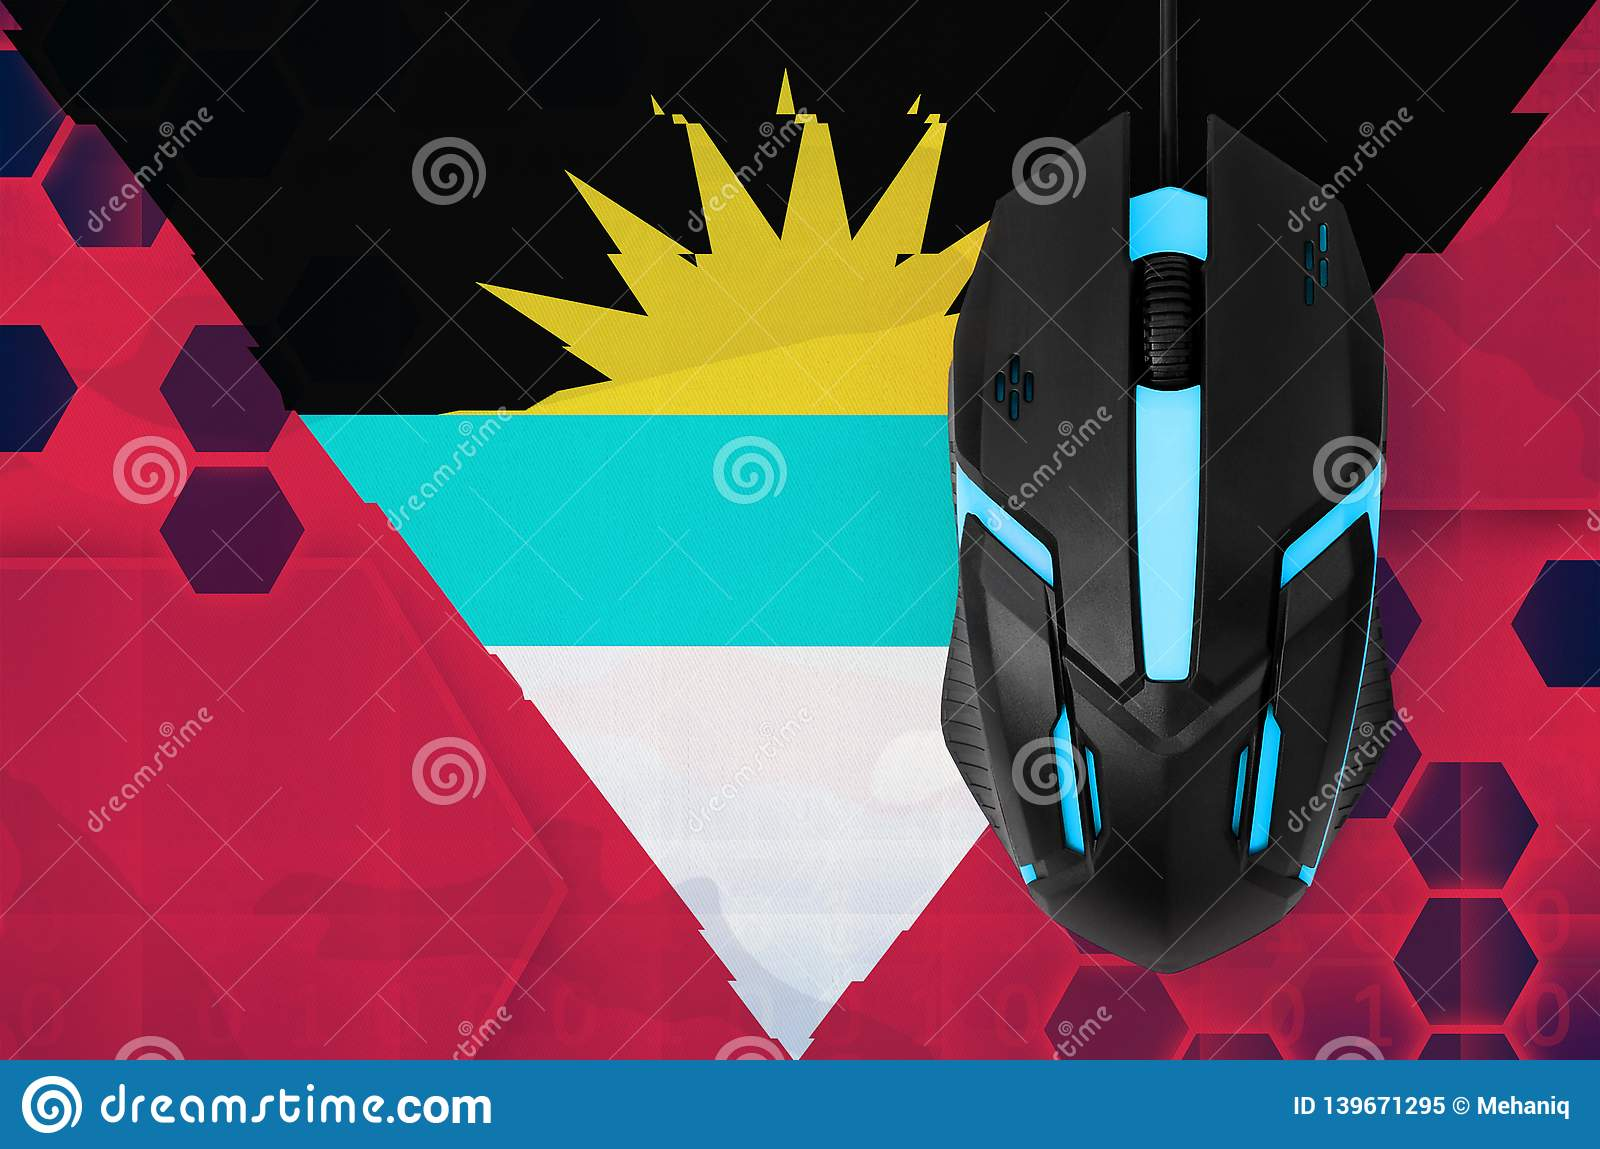 Antigua and Barbuda flag and computer mouse. Concept of country representing e-sports team